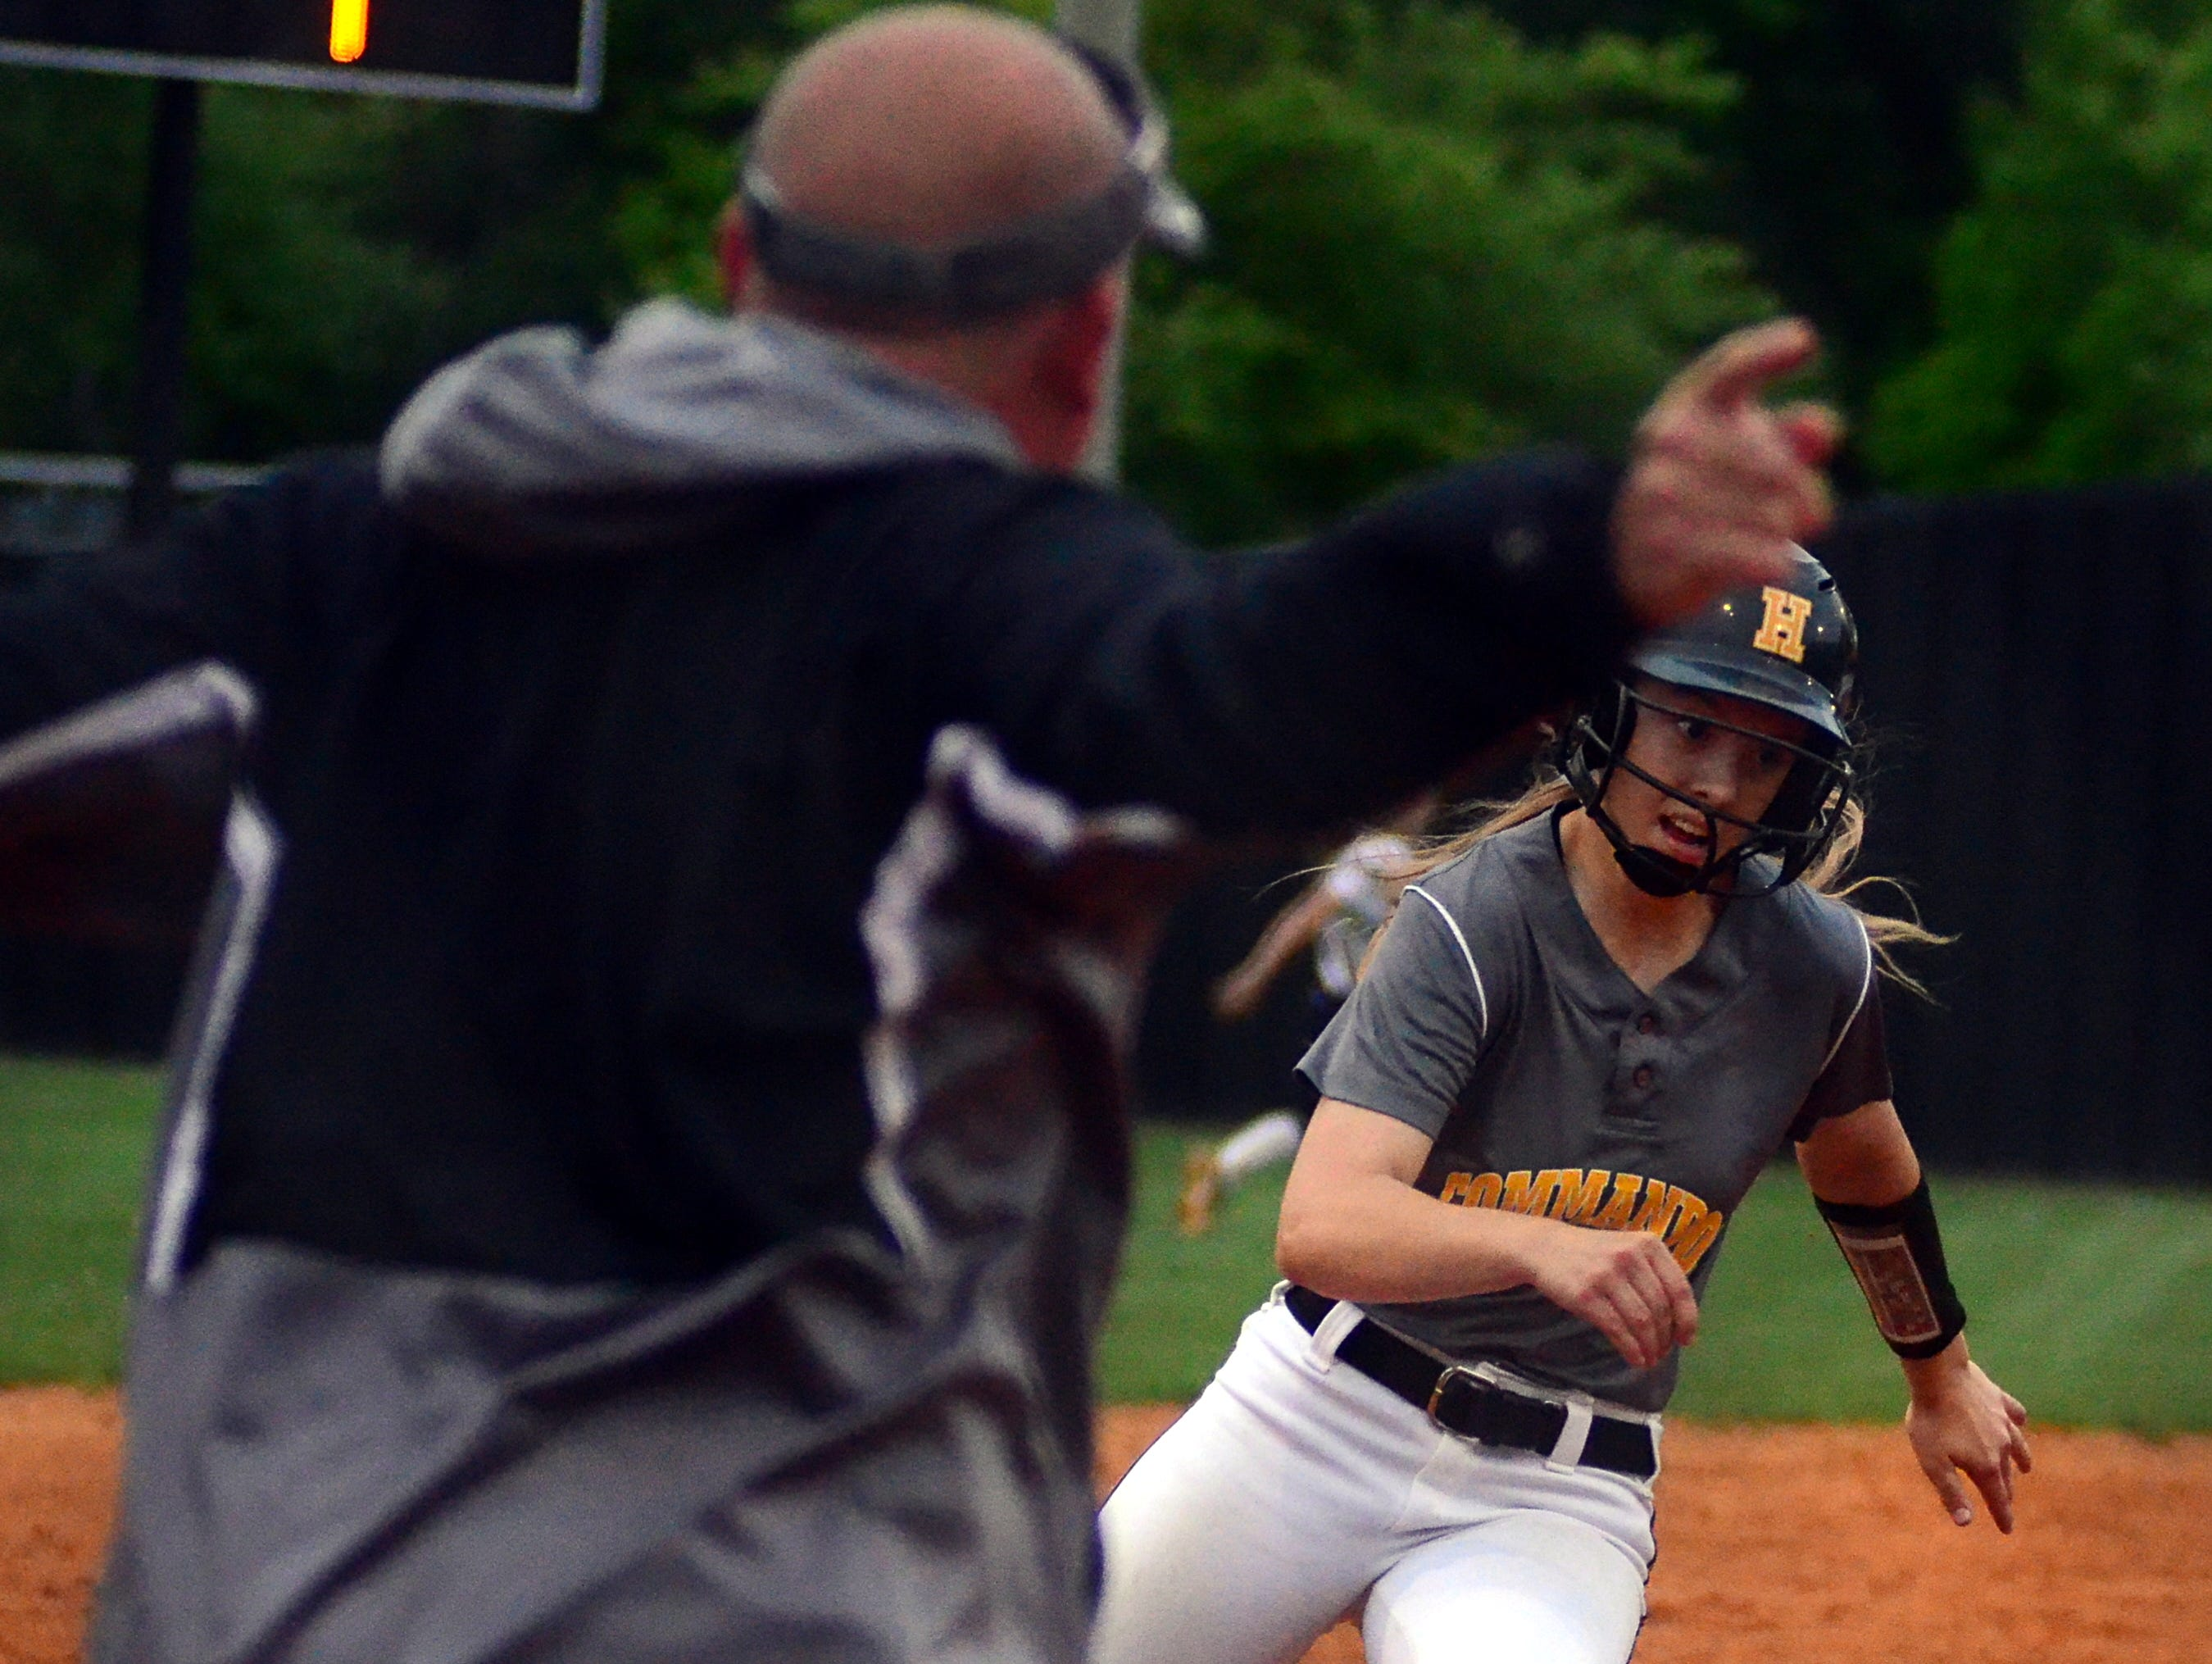 Hendersonville High junior Lexi Revis rounds third base as Lady Commando head coach Jeff Serbin waves her home during third-inning action. Revis scored twice in the Lady Commandos' 5-4 victory.